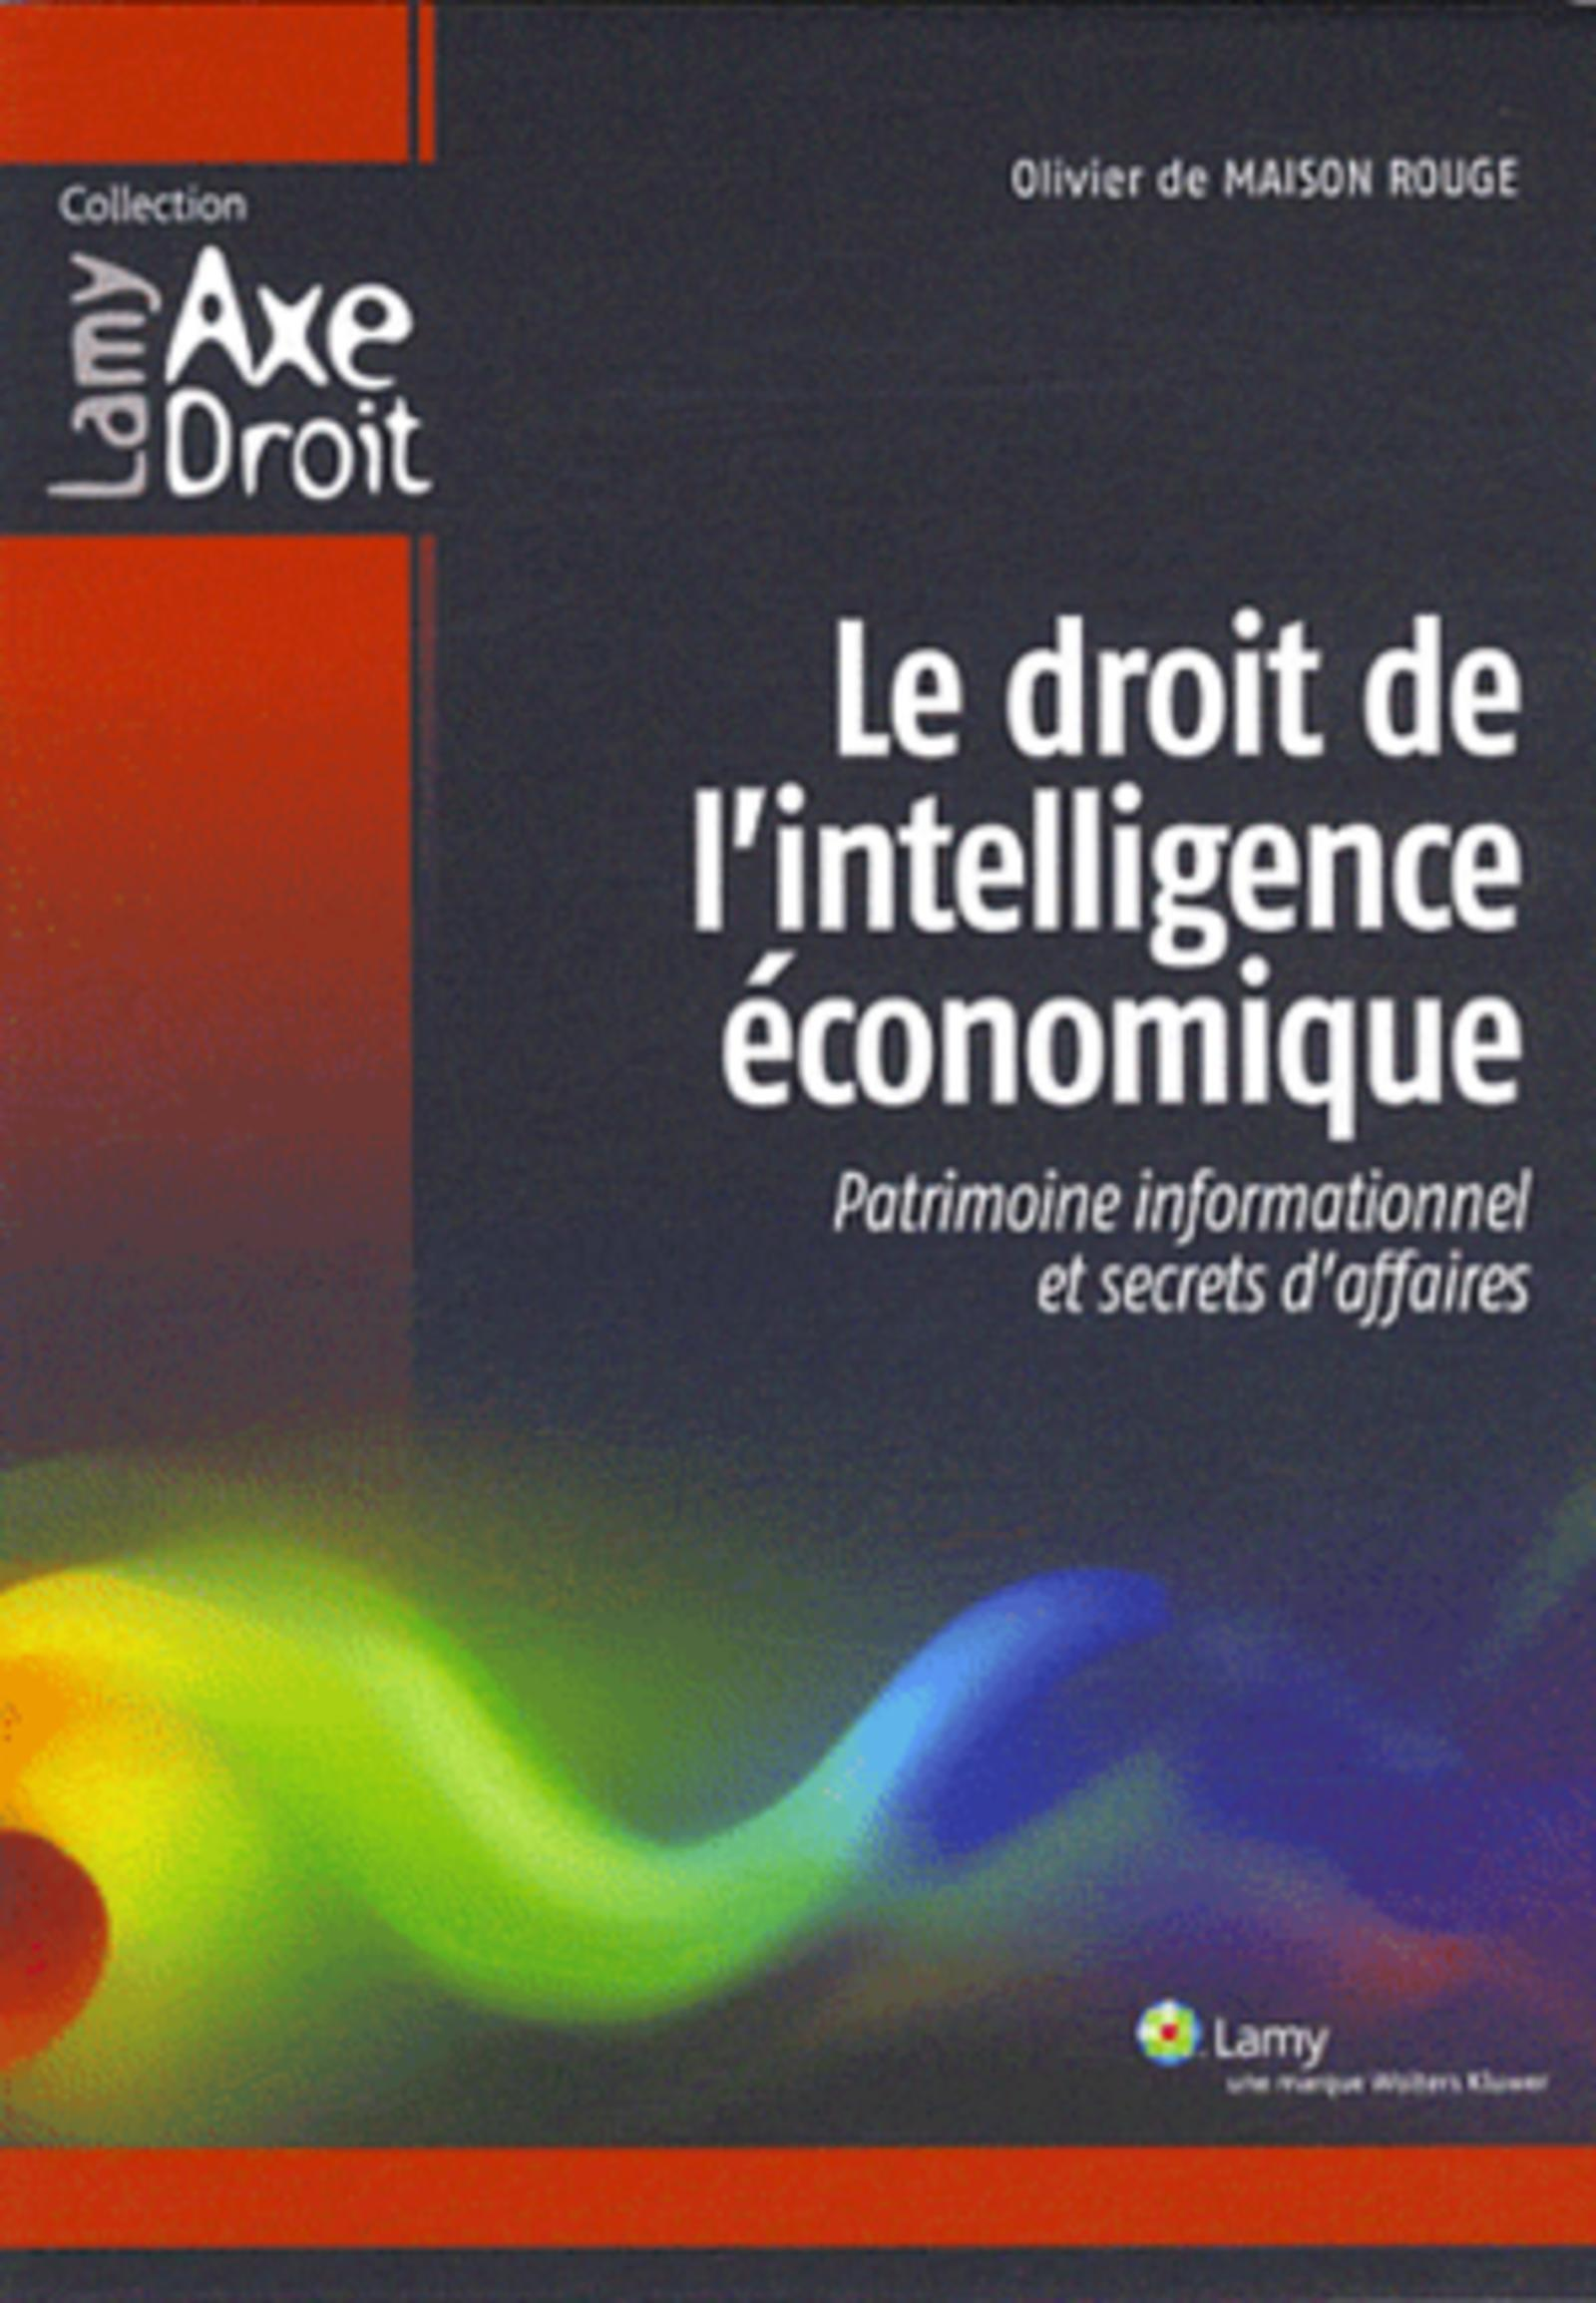 LE DROIT DE L'INTELLIGENCE ECONOMIQUE - PATRIMOINE INFORMATIONNEL ET SECRETS D'AFFAIRES.